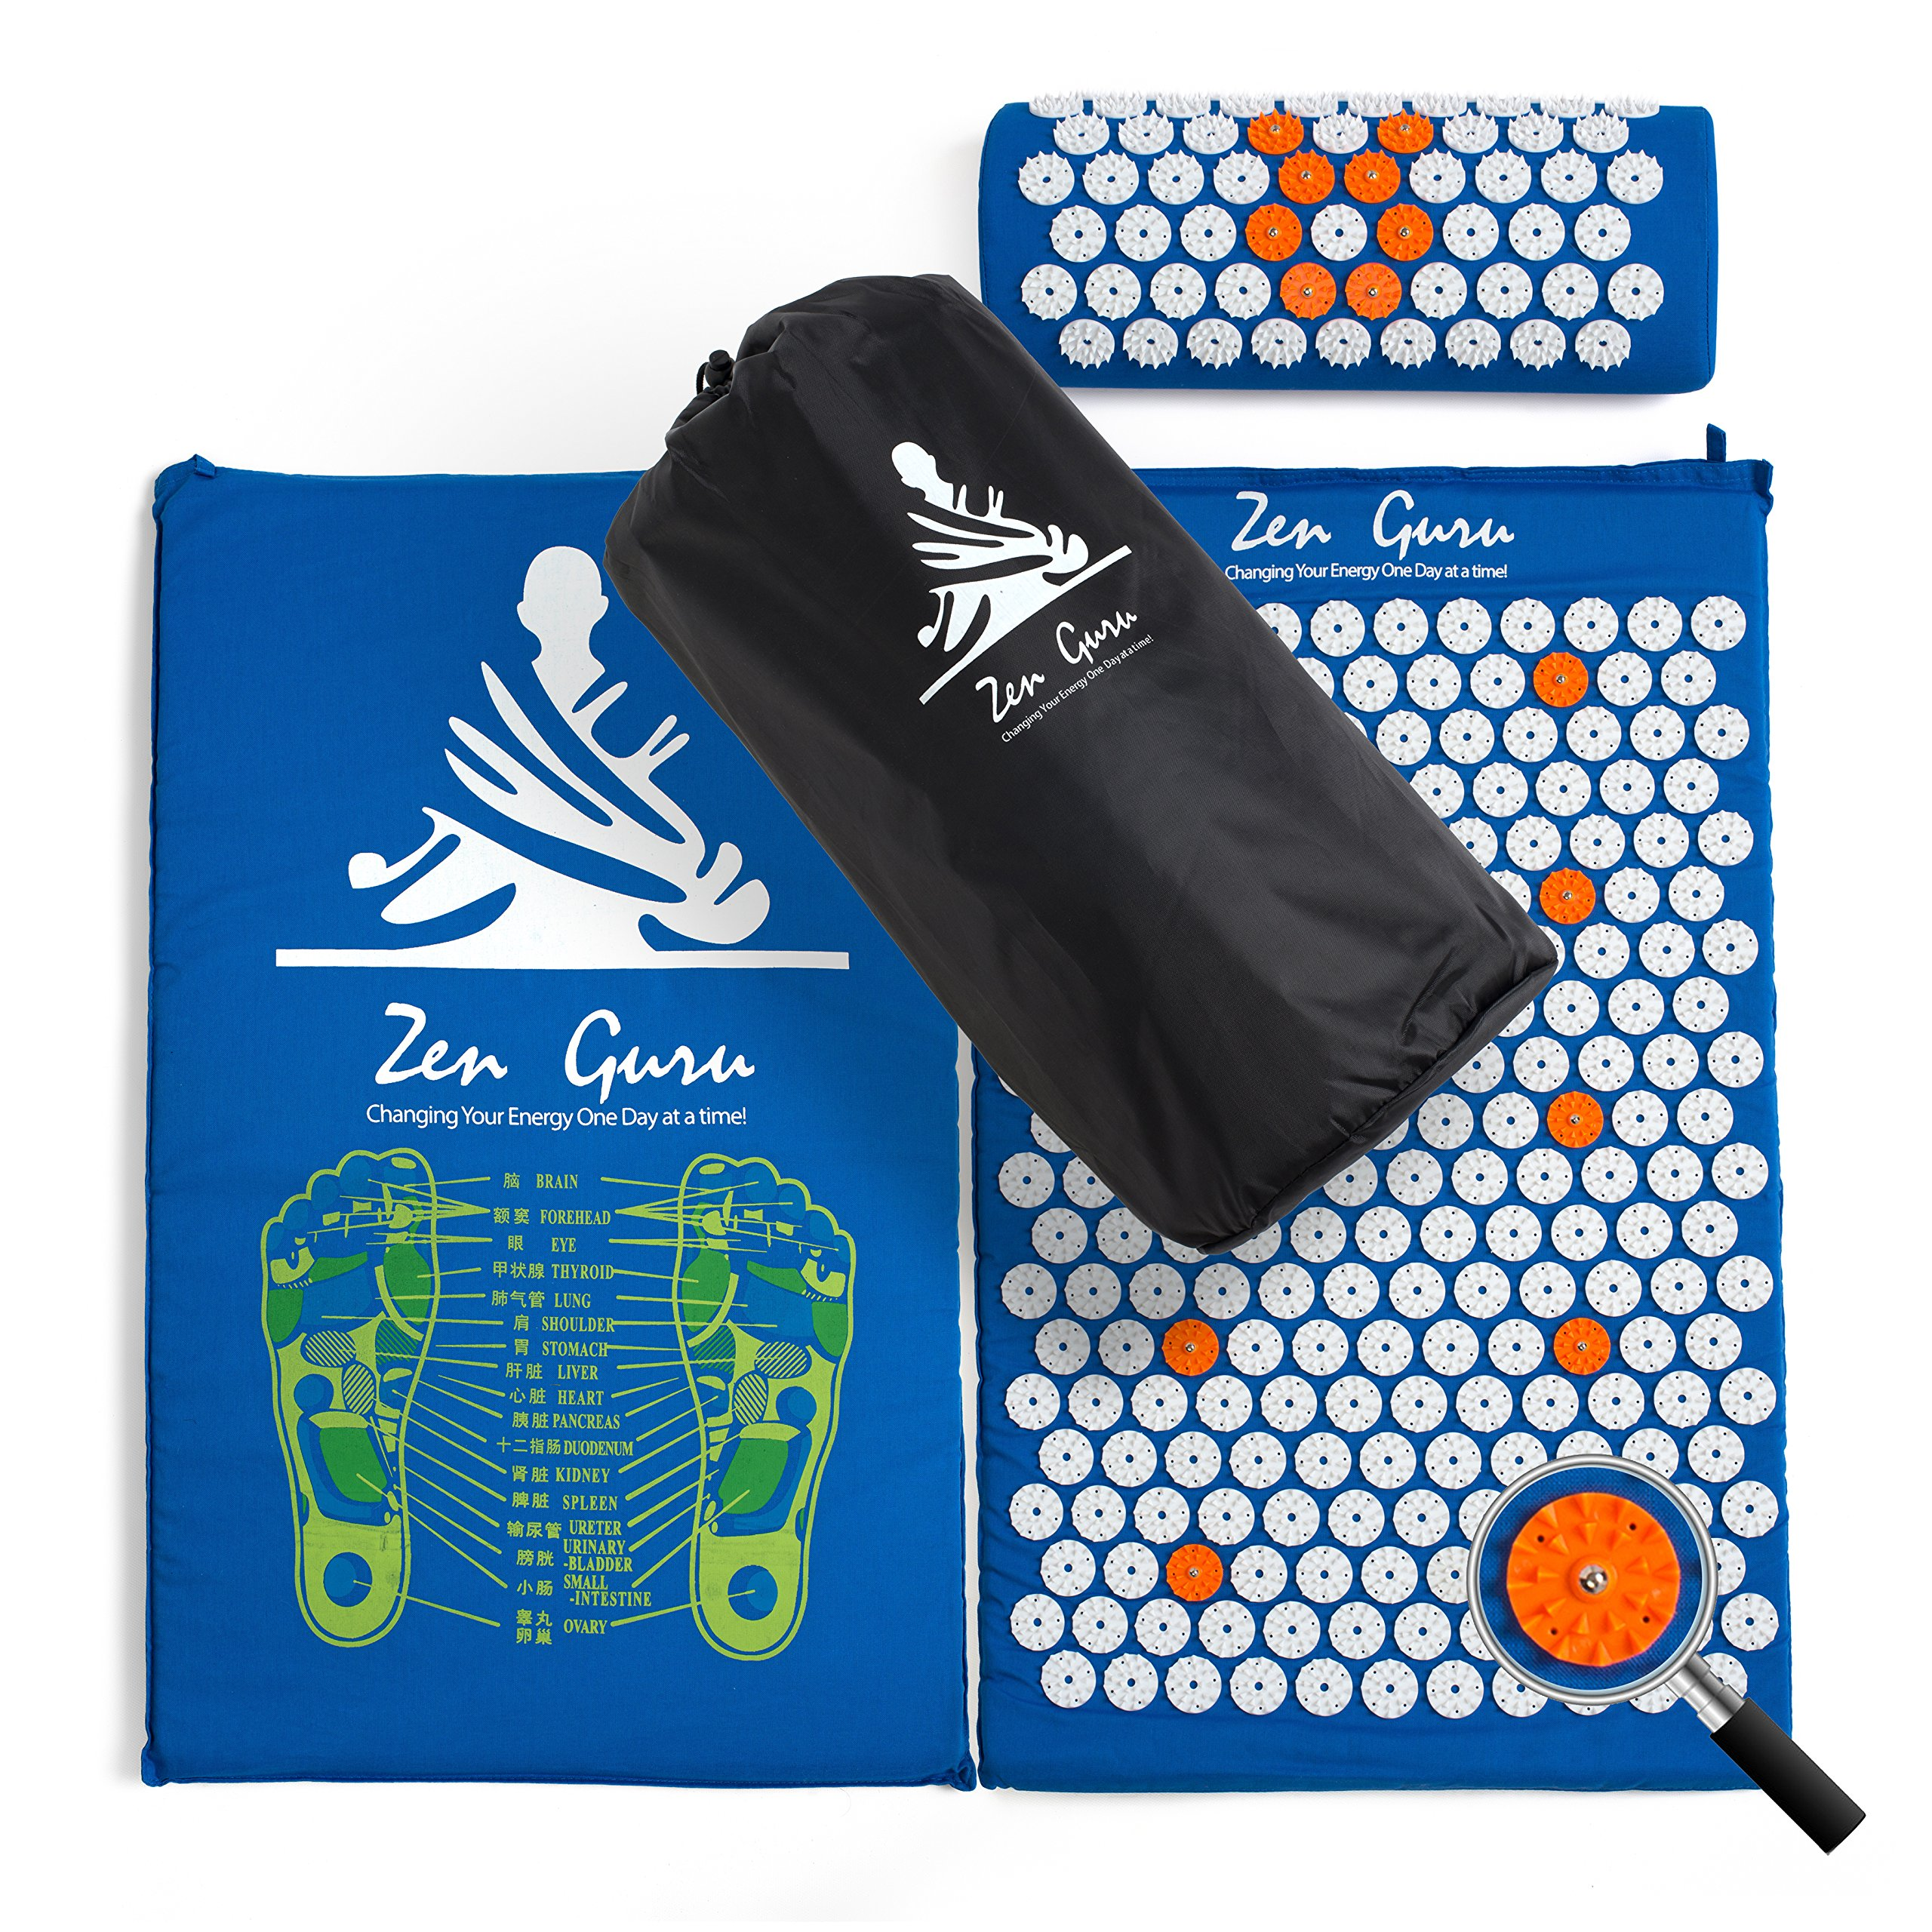 Best Acupressure Mat & Pillow Set - SALE - Effective Remedy for Pain and Stress Relief - With Magnet Therapy - FREE BONUSES: Carry Bag & Reflexology Foot Chart - LIFETIME MONEY BACK - ZenGuru (Blue)